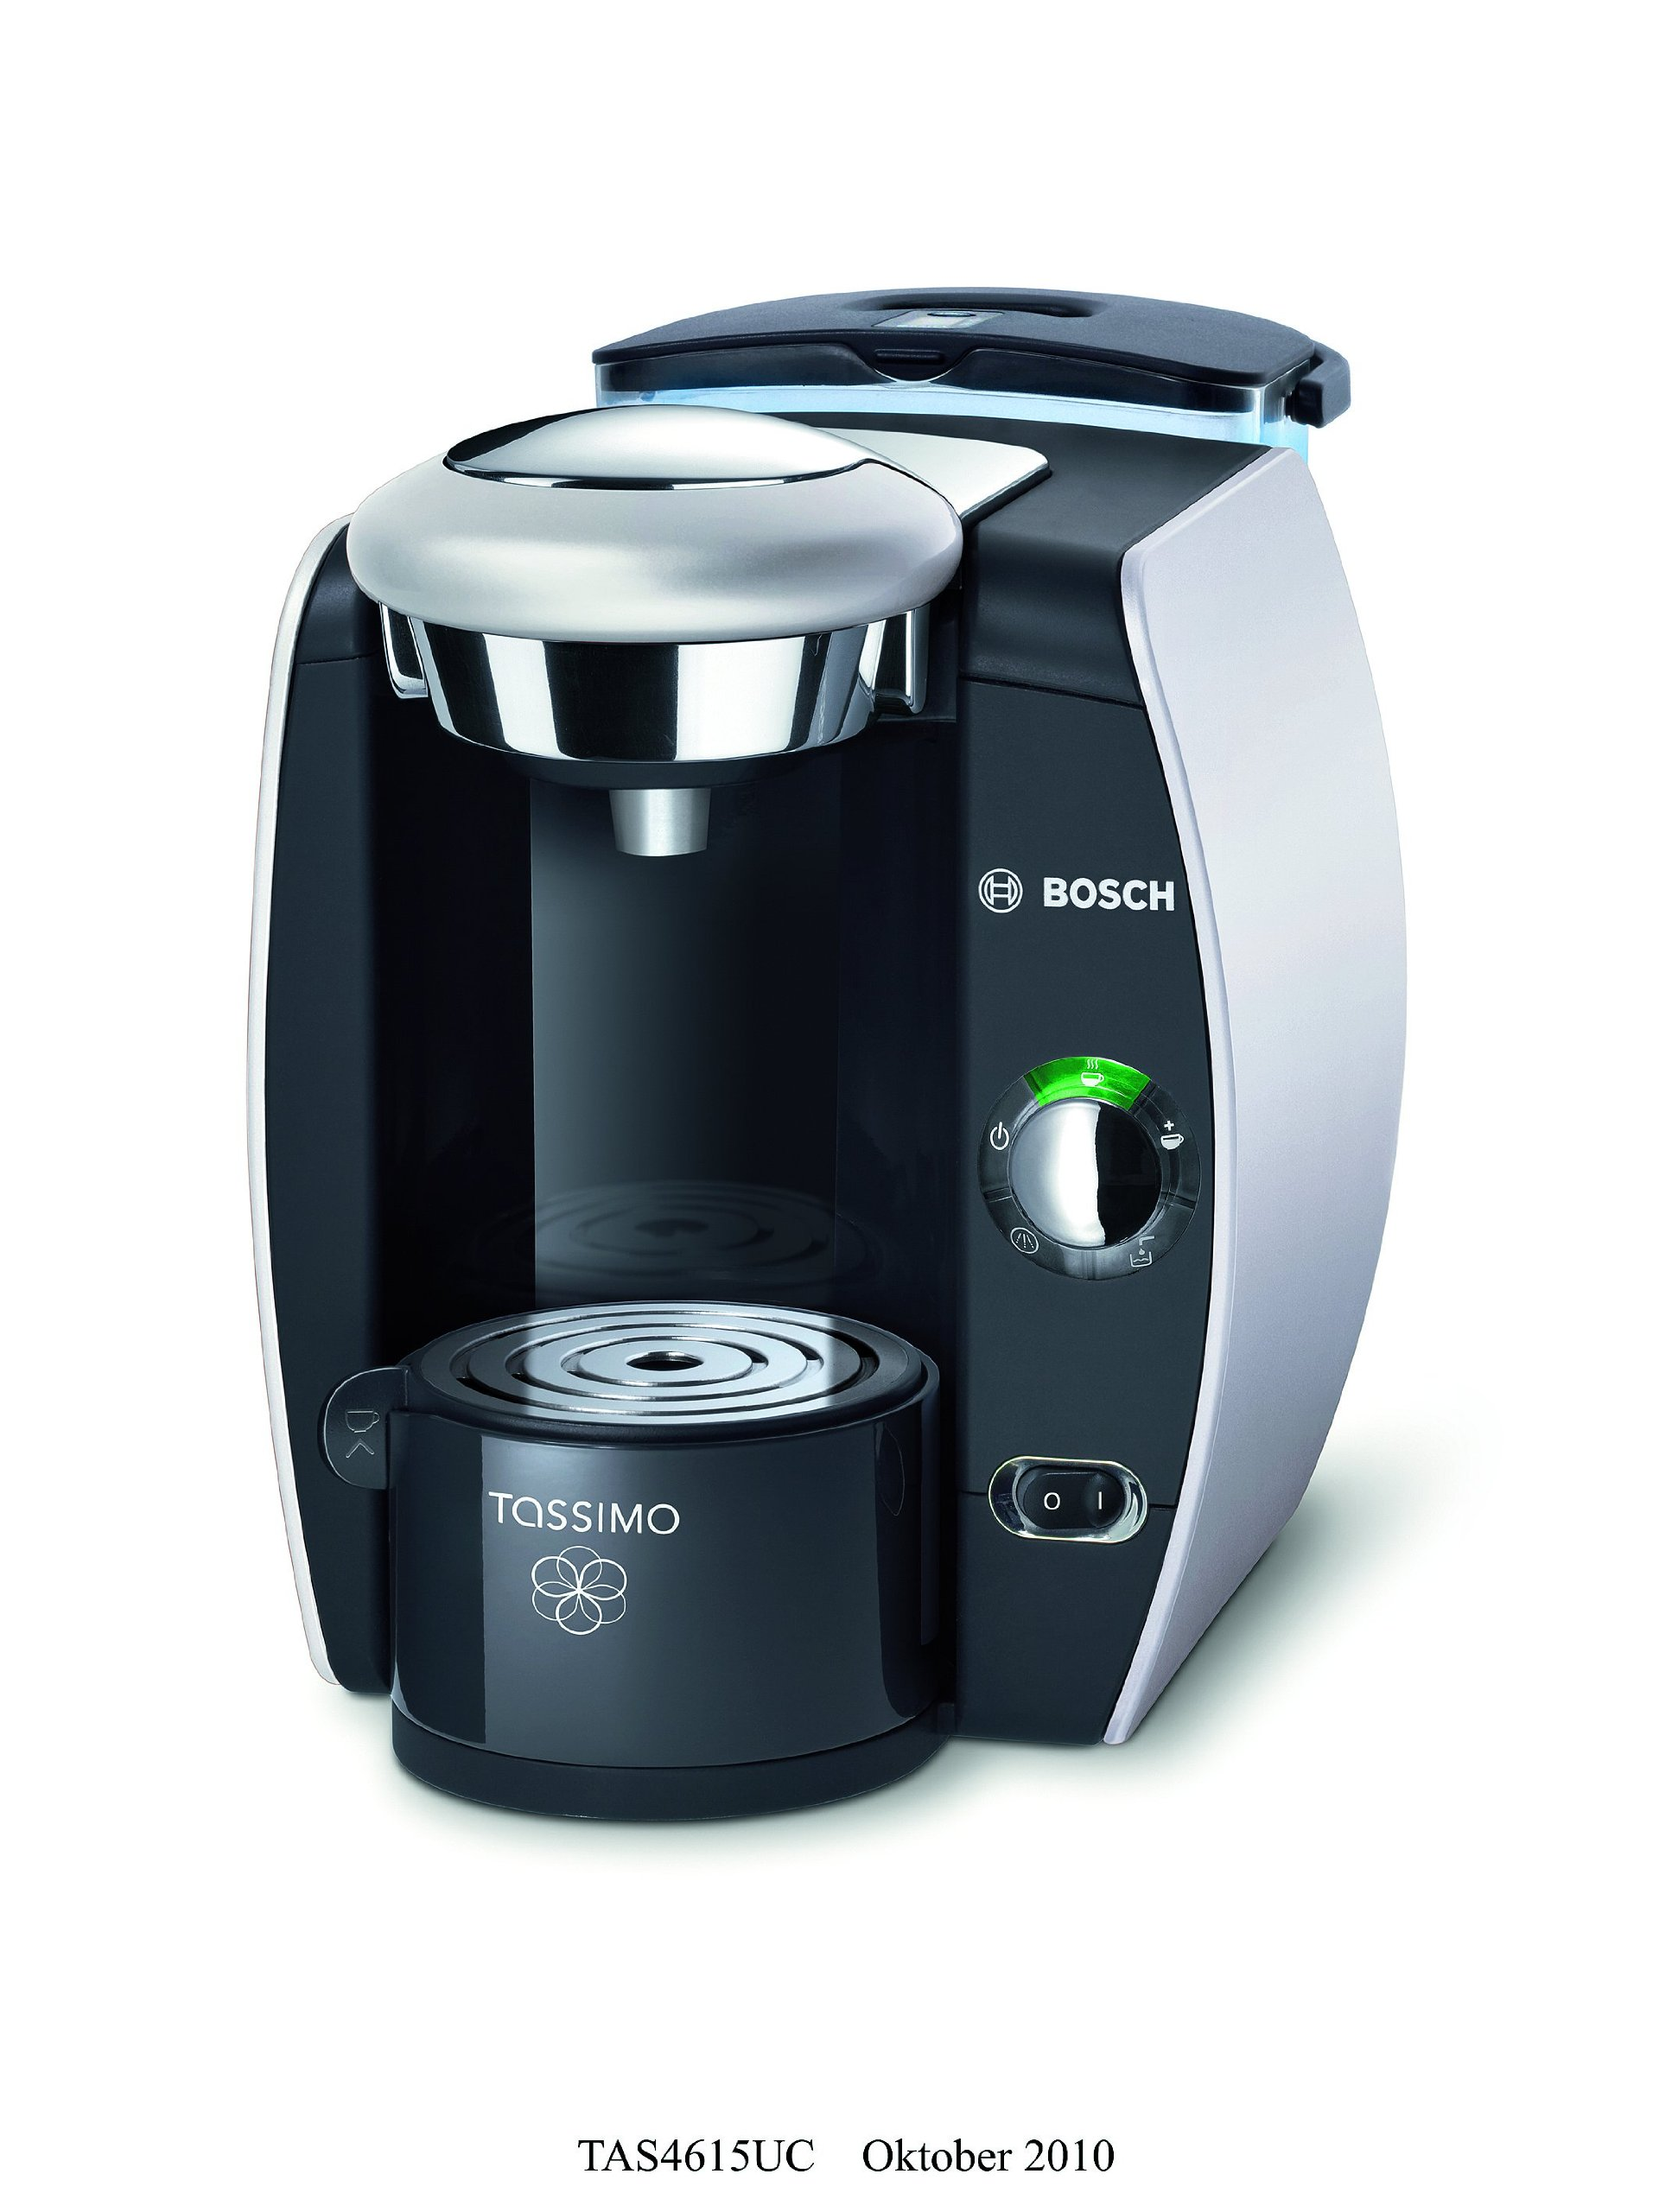 bosch tas4615uc8 tassimo single serve coffee brewer t46 t45. Black Bedroom Furniture Sets. Home Design Ideas